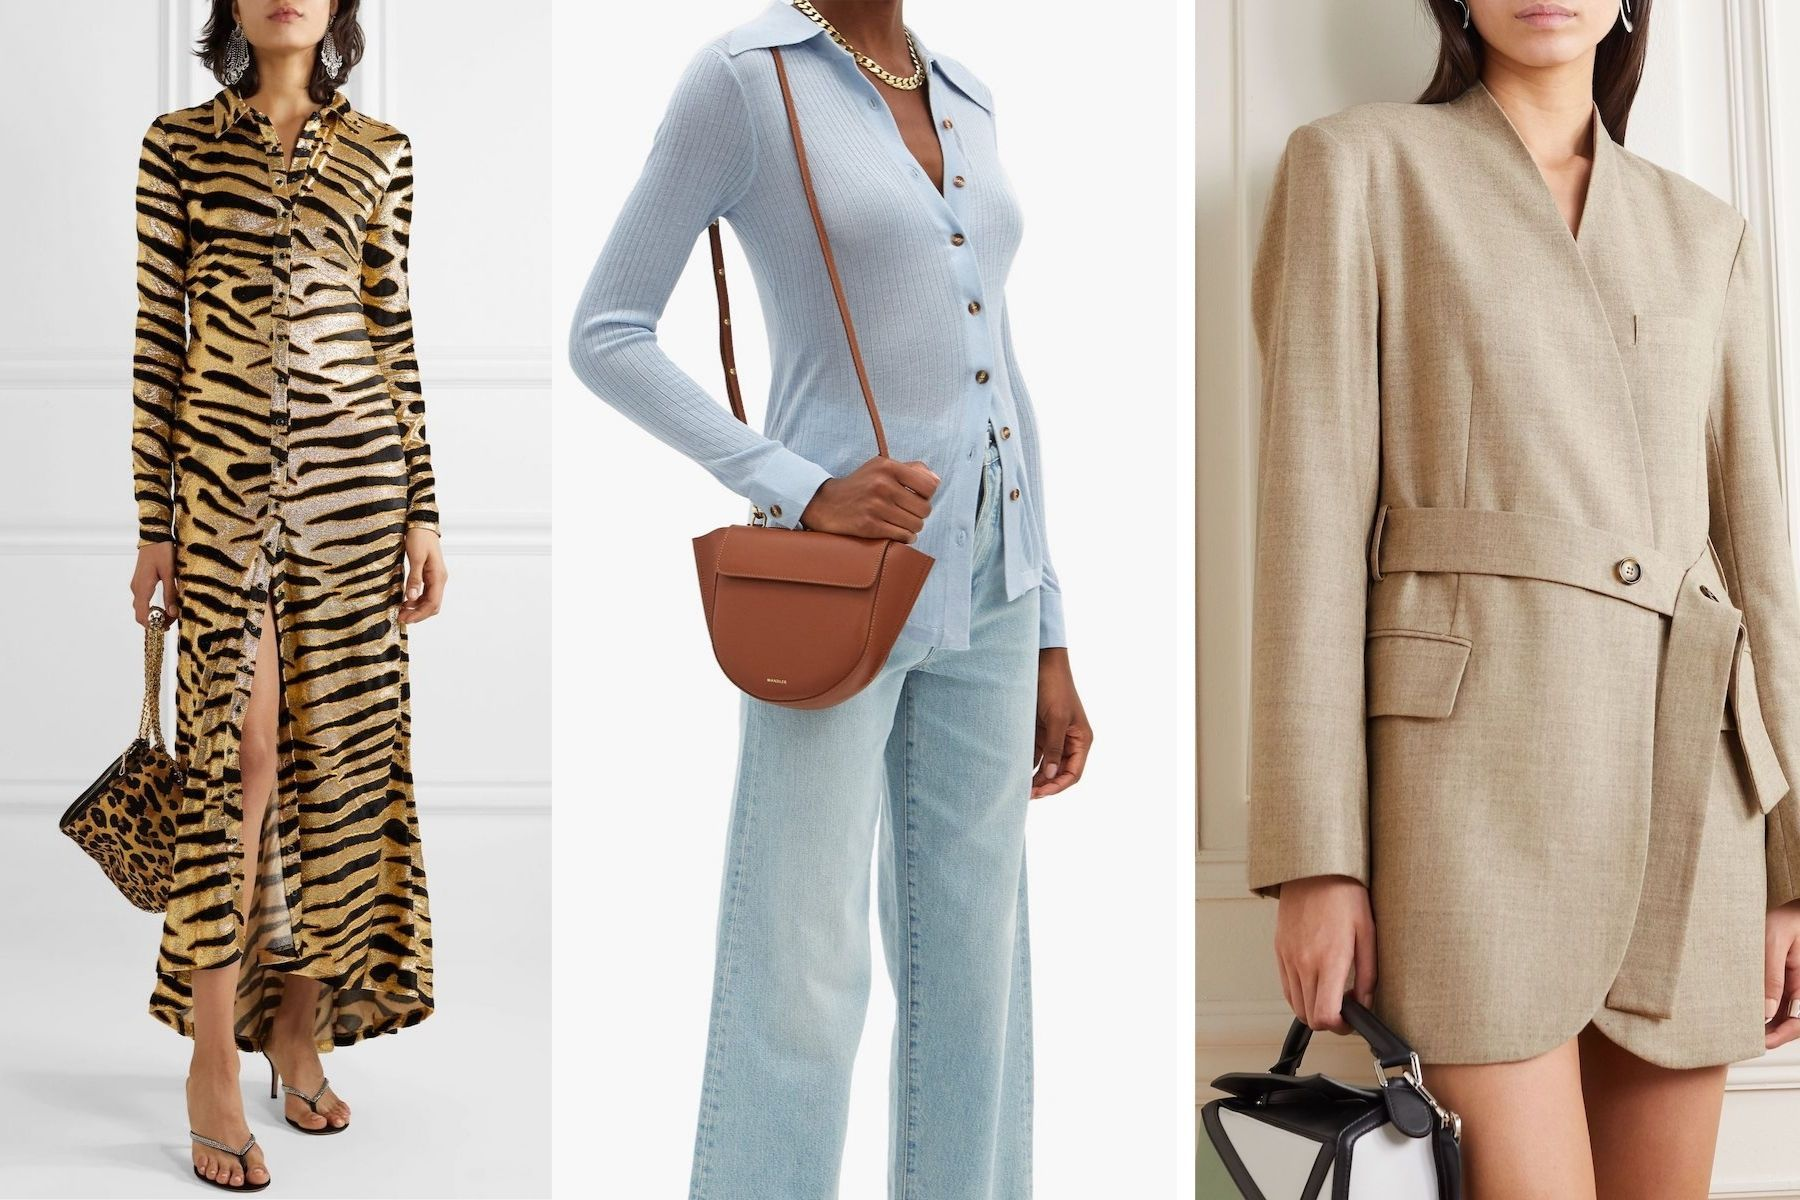 Black Friday 2020: The Best Fashion Buys From Net-a-Porter And More